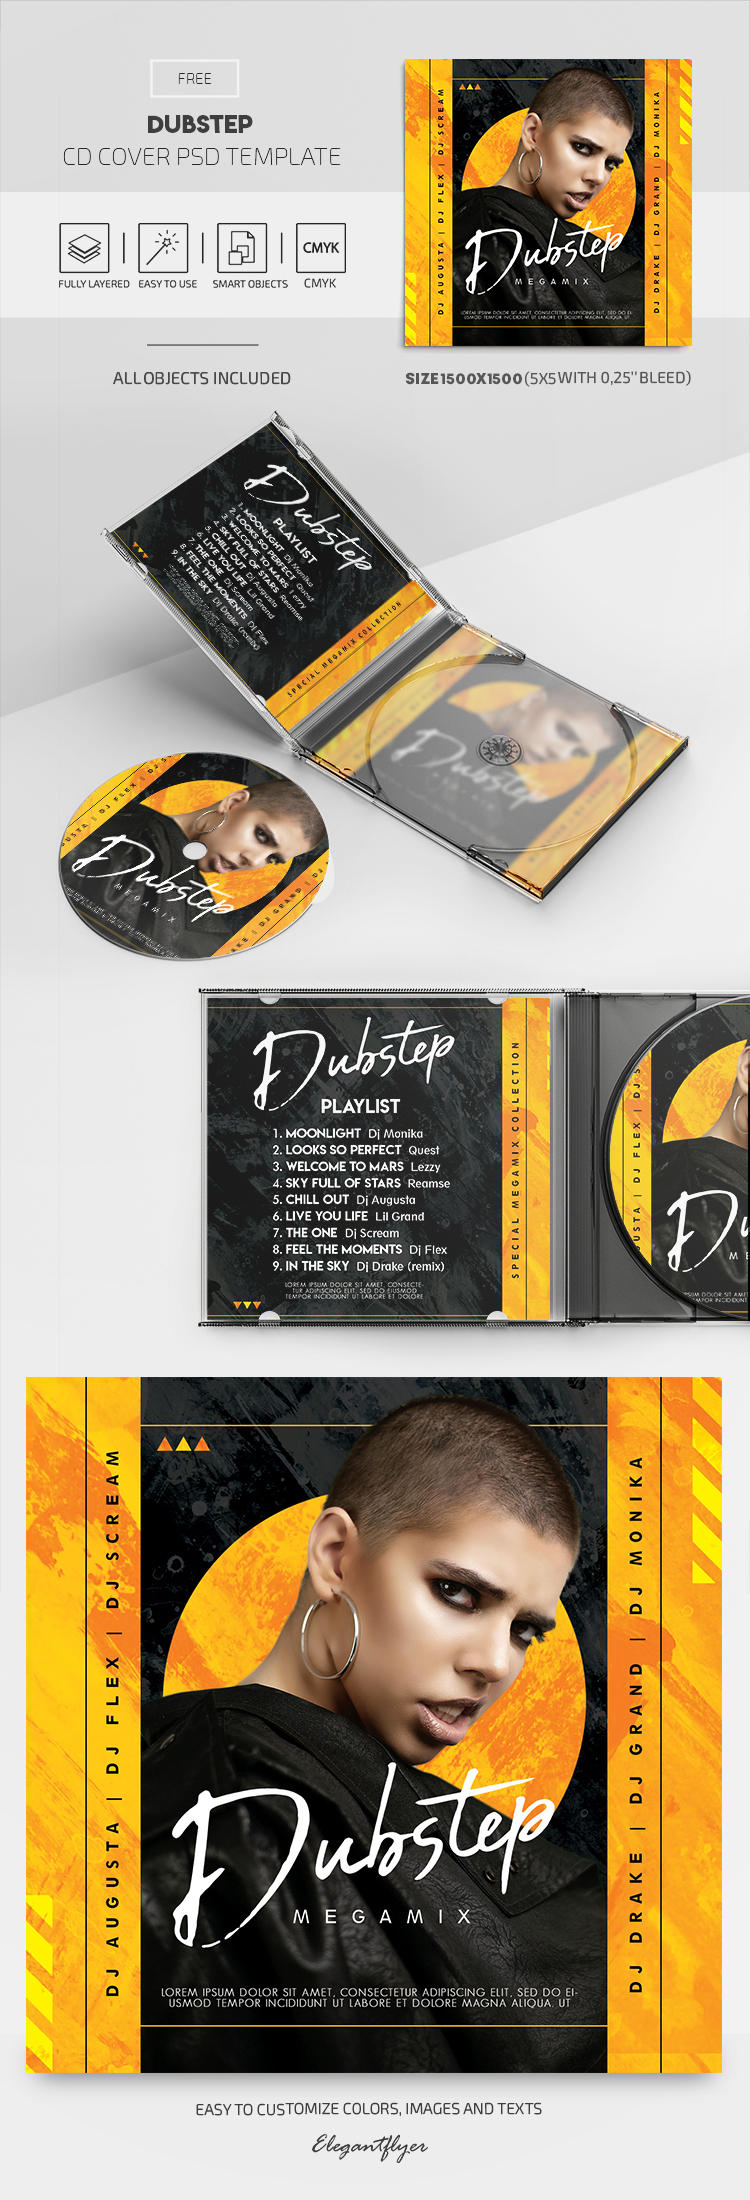 Dubstep – Free CD Cover PSD Template